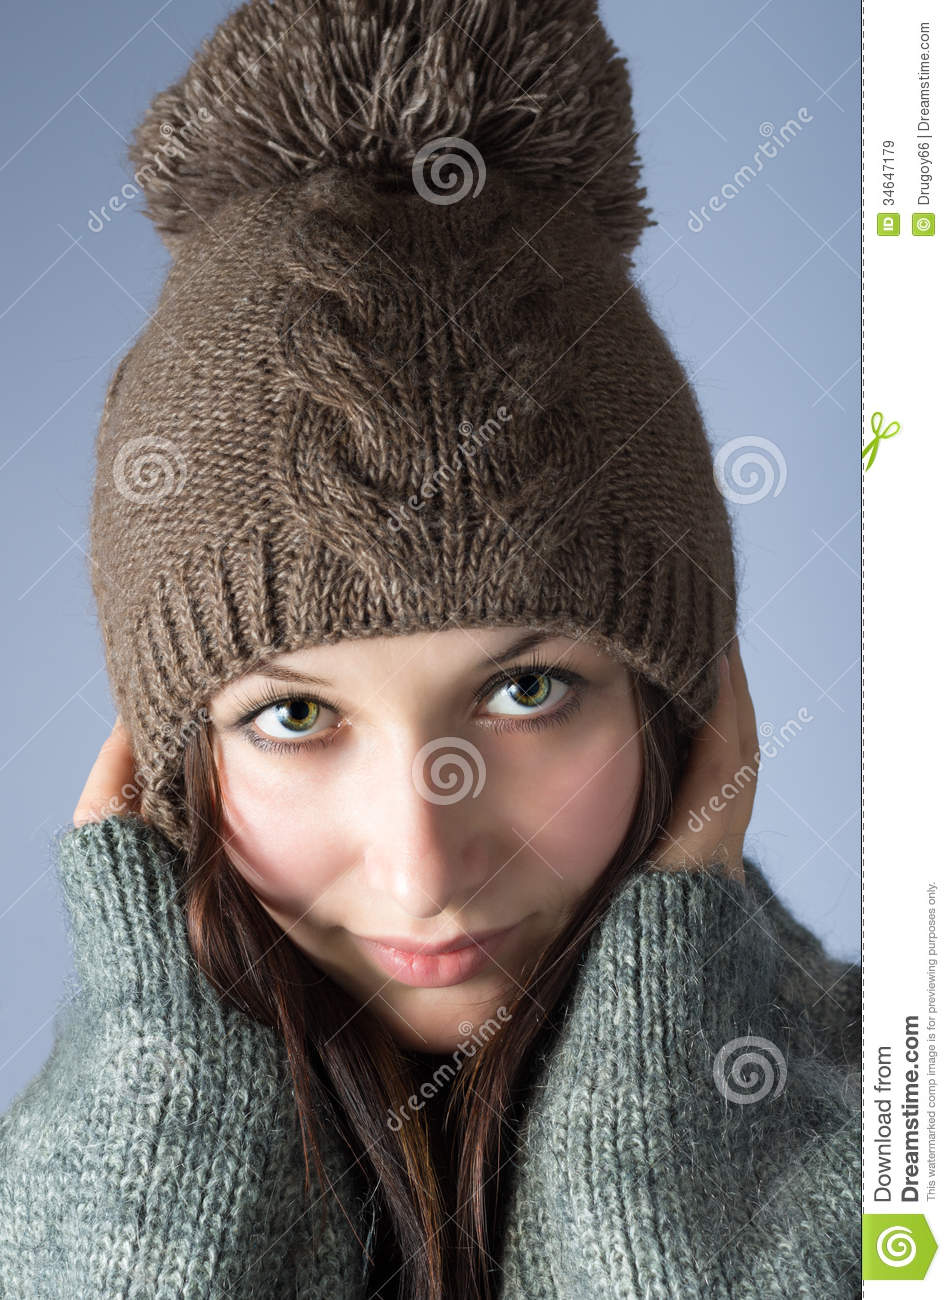 Portrait Of Woman In Knitted Hat Stock Image - Image of clothes ... 5072287a9f9